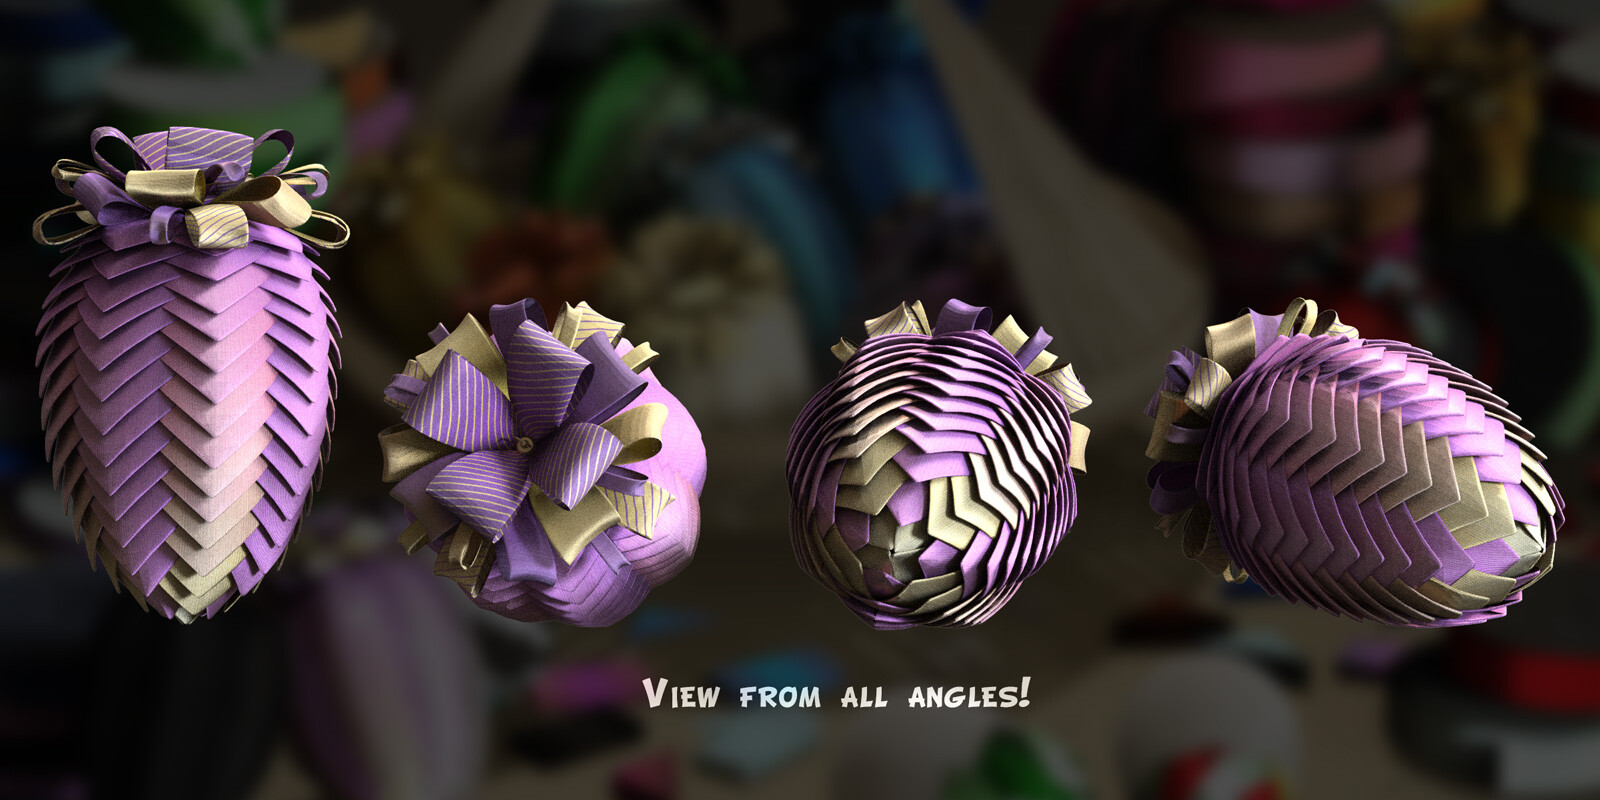 This image shows the folded ribbon from many angles.